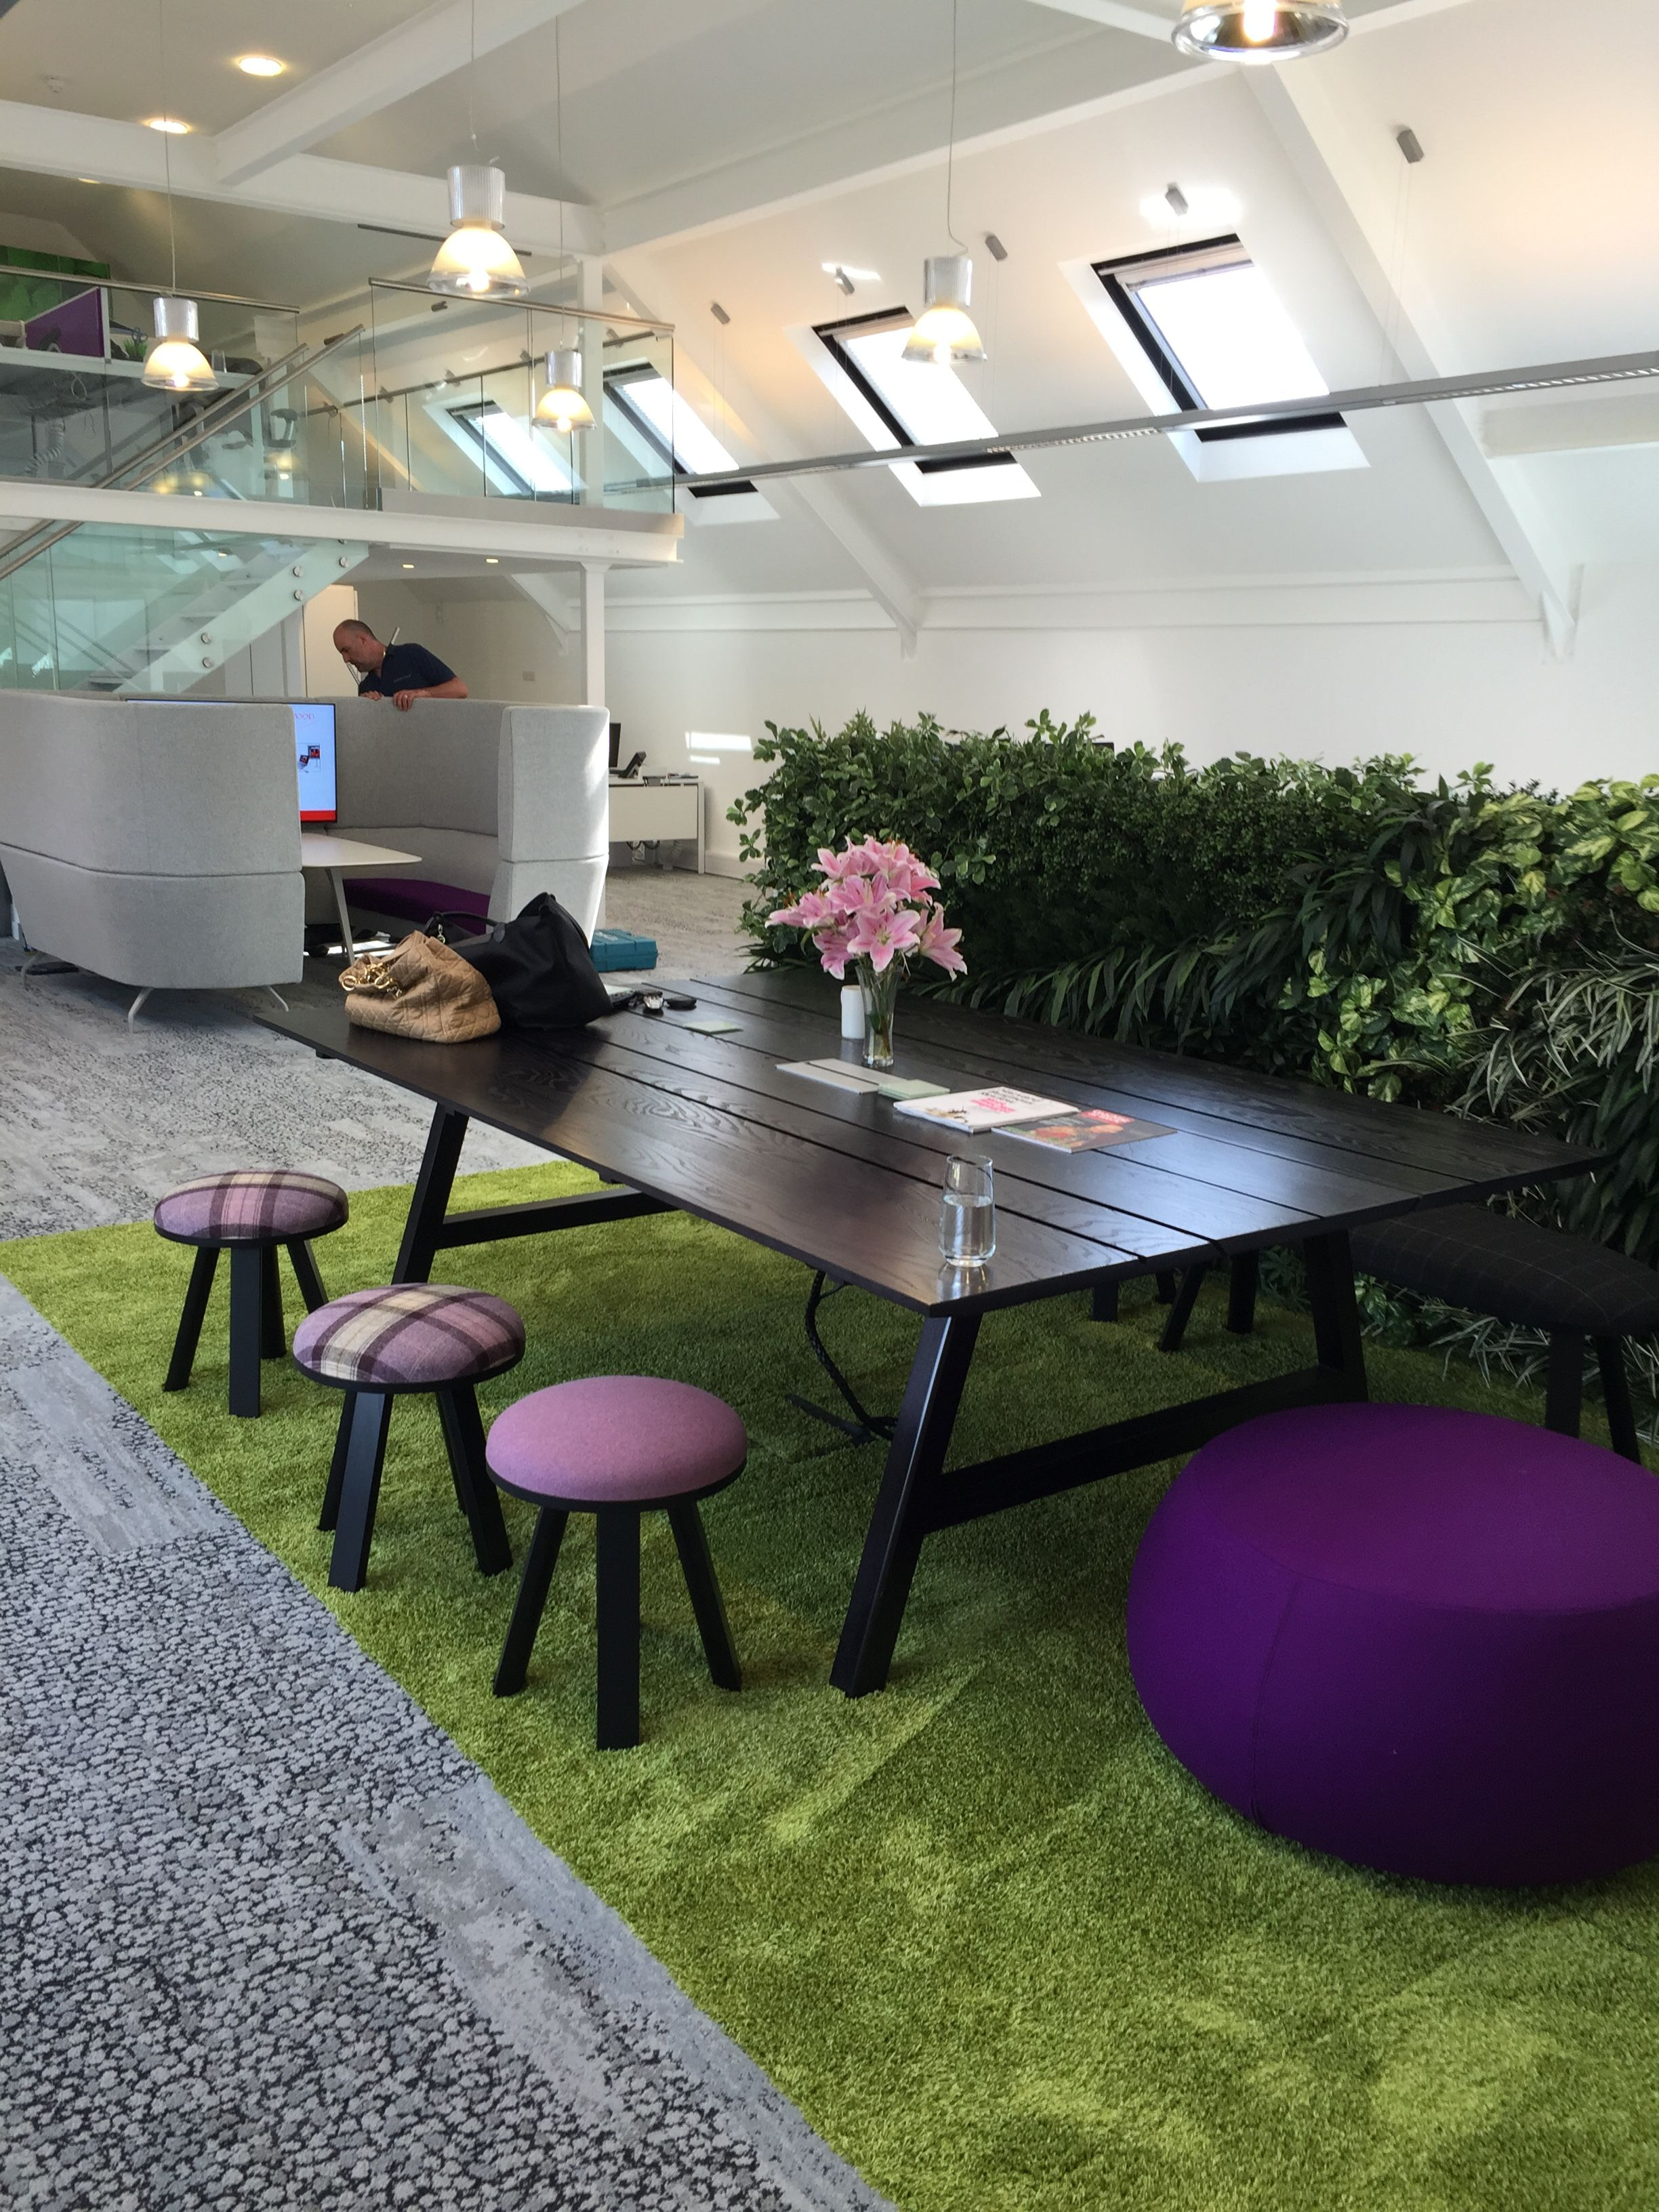 Livewall green wall system make conferences more comfortable - Find This Pin And More On Our Work By Wpclondon